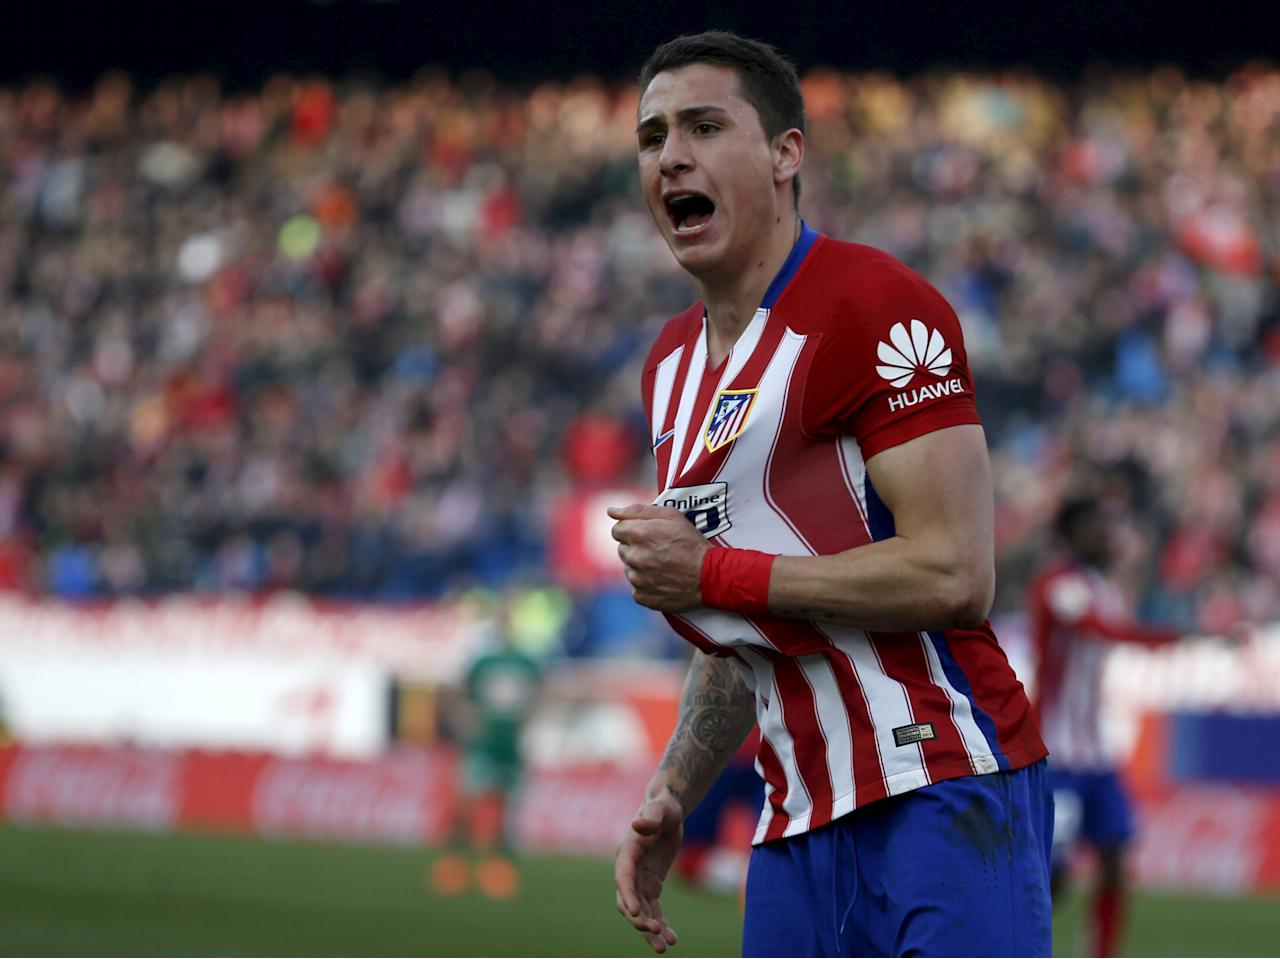 Football Soccer - Atletico Madrid v Eibar - Spanish Liga BBVA - Vicente Calderon stadium, Madrid, Spain - 06/02/16 Atletico Madrid's Jose Maria Gimenez celebrates his goal. REUTERS/Javier Barbancho